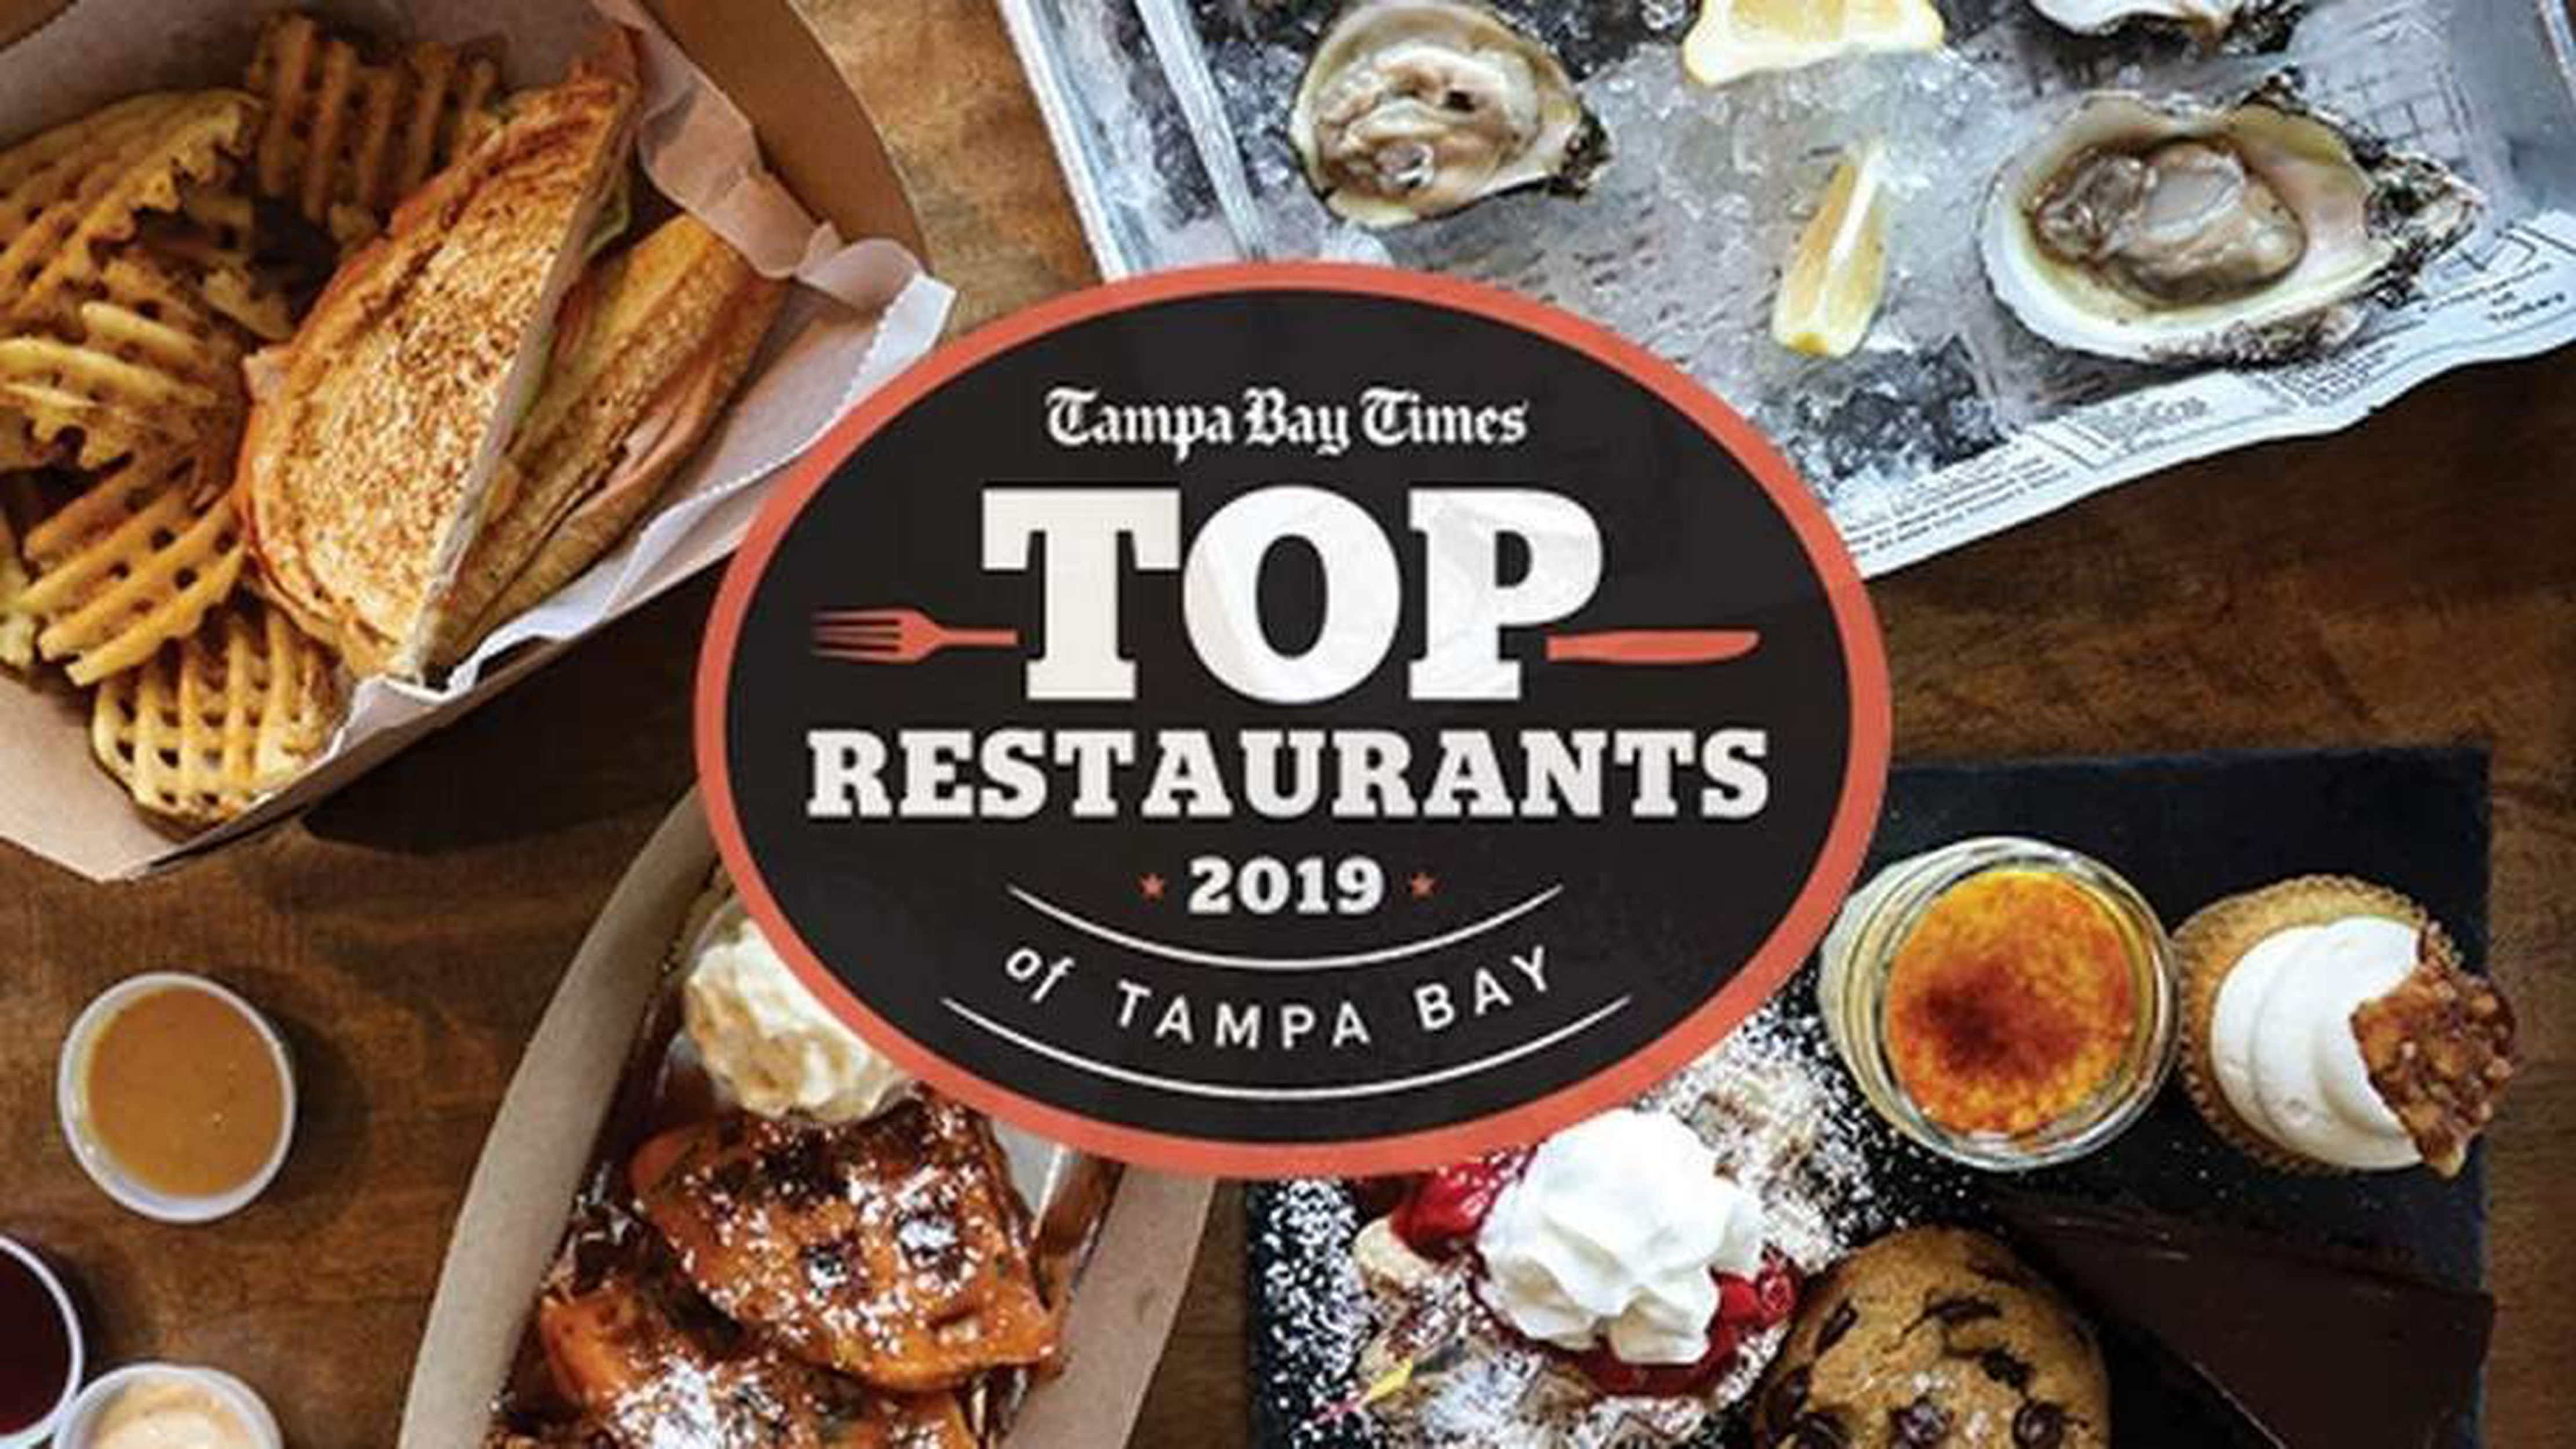 Top Restaurants Of Tampa Bay 2019 Laura Reiley Explains How